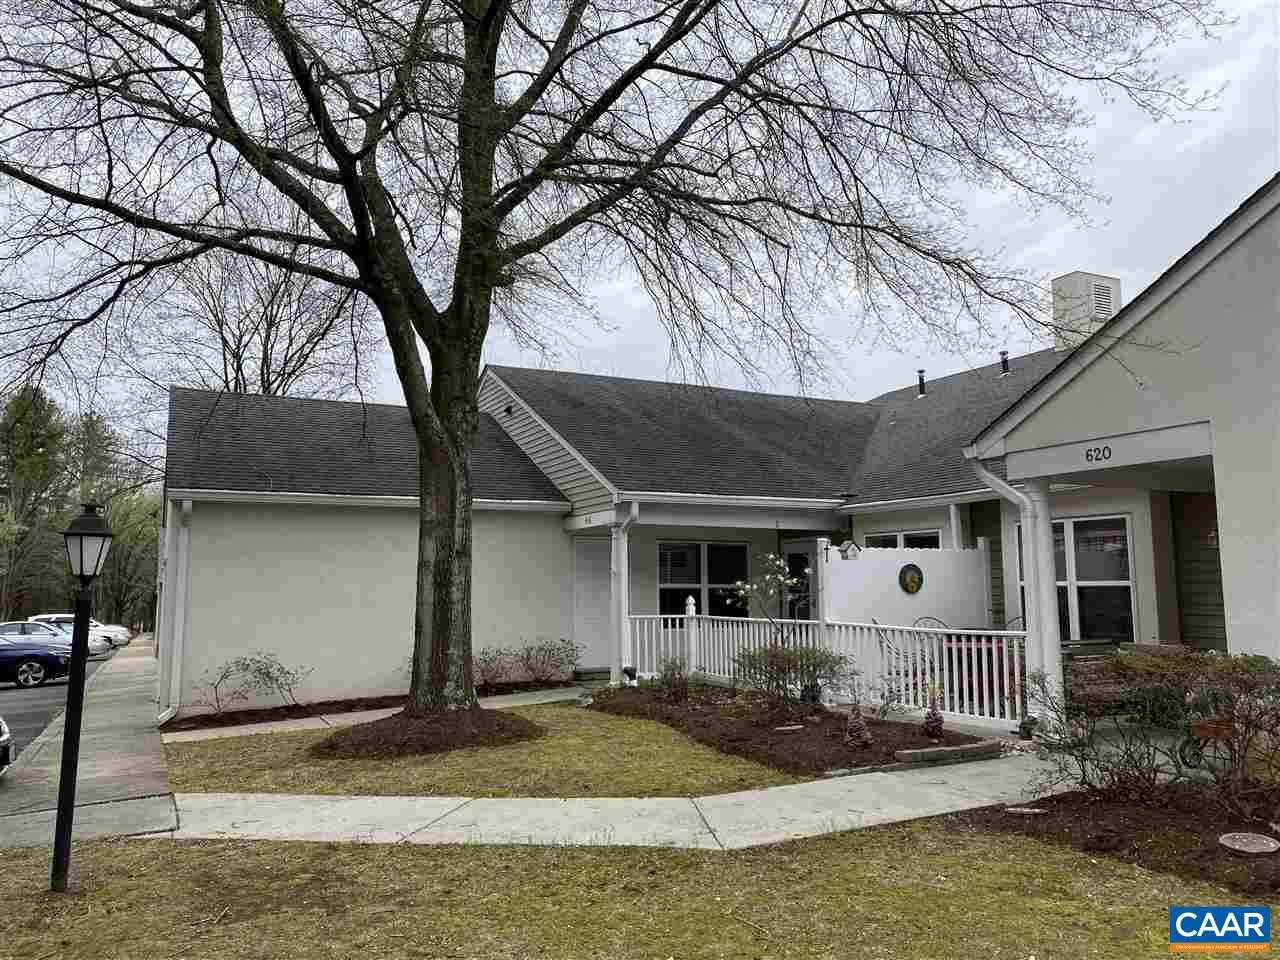 Easy turn key living. Charming, well maintained in move in condition. Main level living area features an eat in kitchen, open living room and dining room, master suite with office or bonus room, guest bedroom, and plenty of natural light. Large one car garage with extra storage. Finished basement rooms can be used in many ways.  The Villas Condominiums Dues are $277.47 paid monthly. The Property owners Assoc dues are 356.19 paid quarterly at the end of the month. Dues cover trails, pond, exterior maintenance water, sewer, trash, gas, grounds, leaves, gutters, master insurance etc everything except homeowner pays for their electricity.